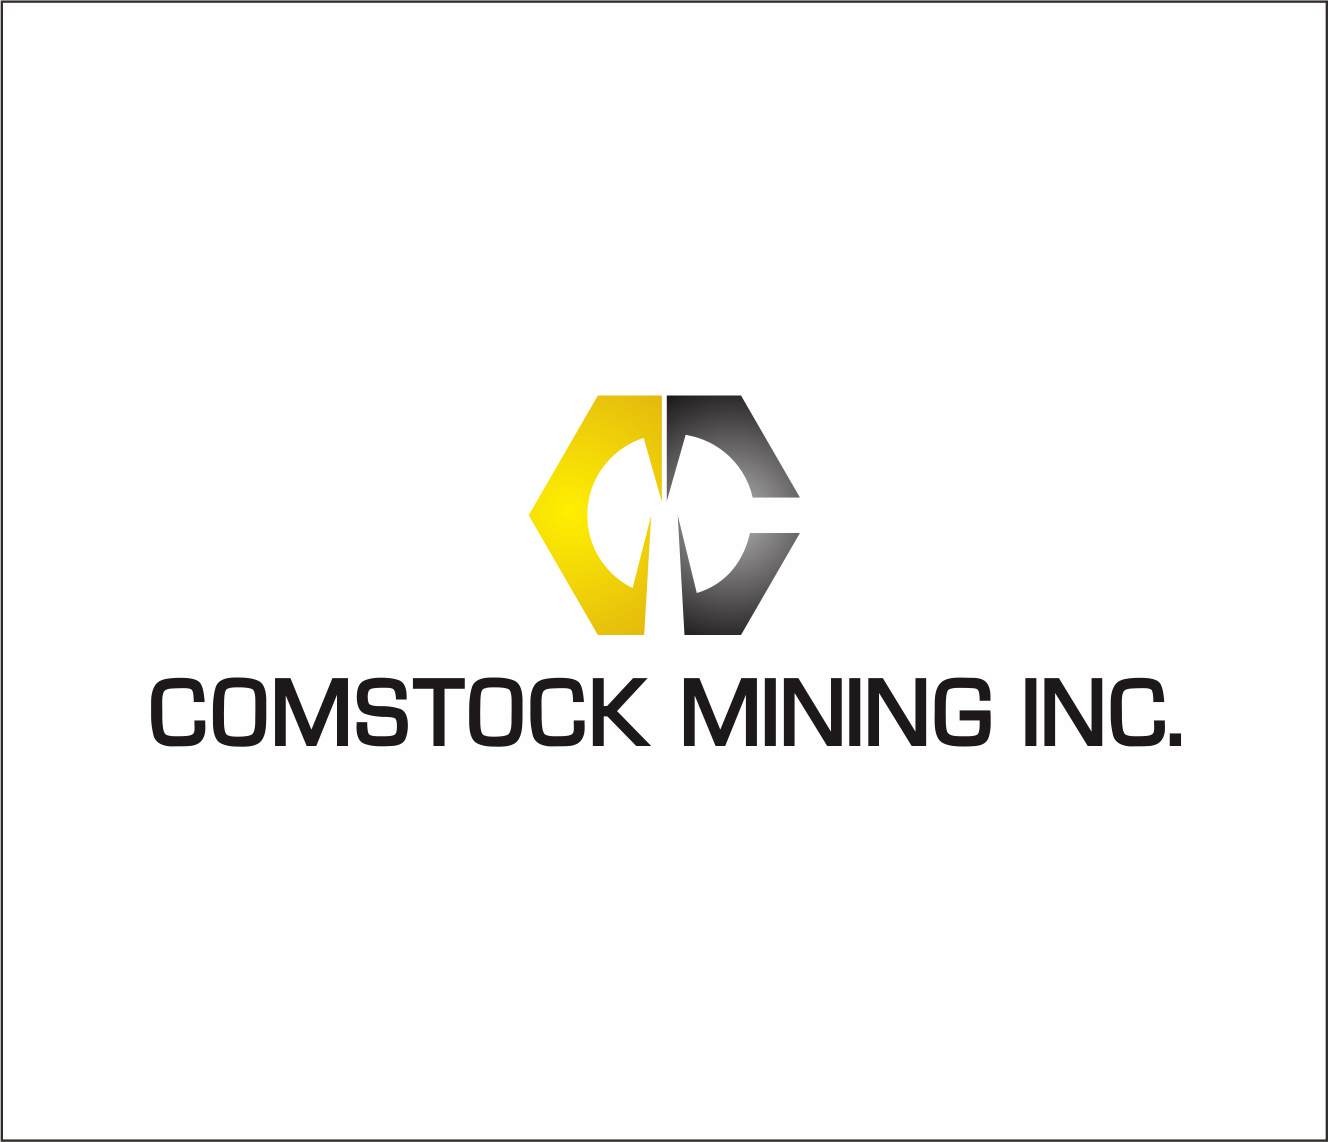 Logo Design by Armada Jamaluddin - Entry No. 51 in the Logo Design Contest Captivating Logo Design for Comstock Mining, Inc..